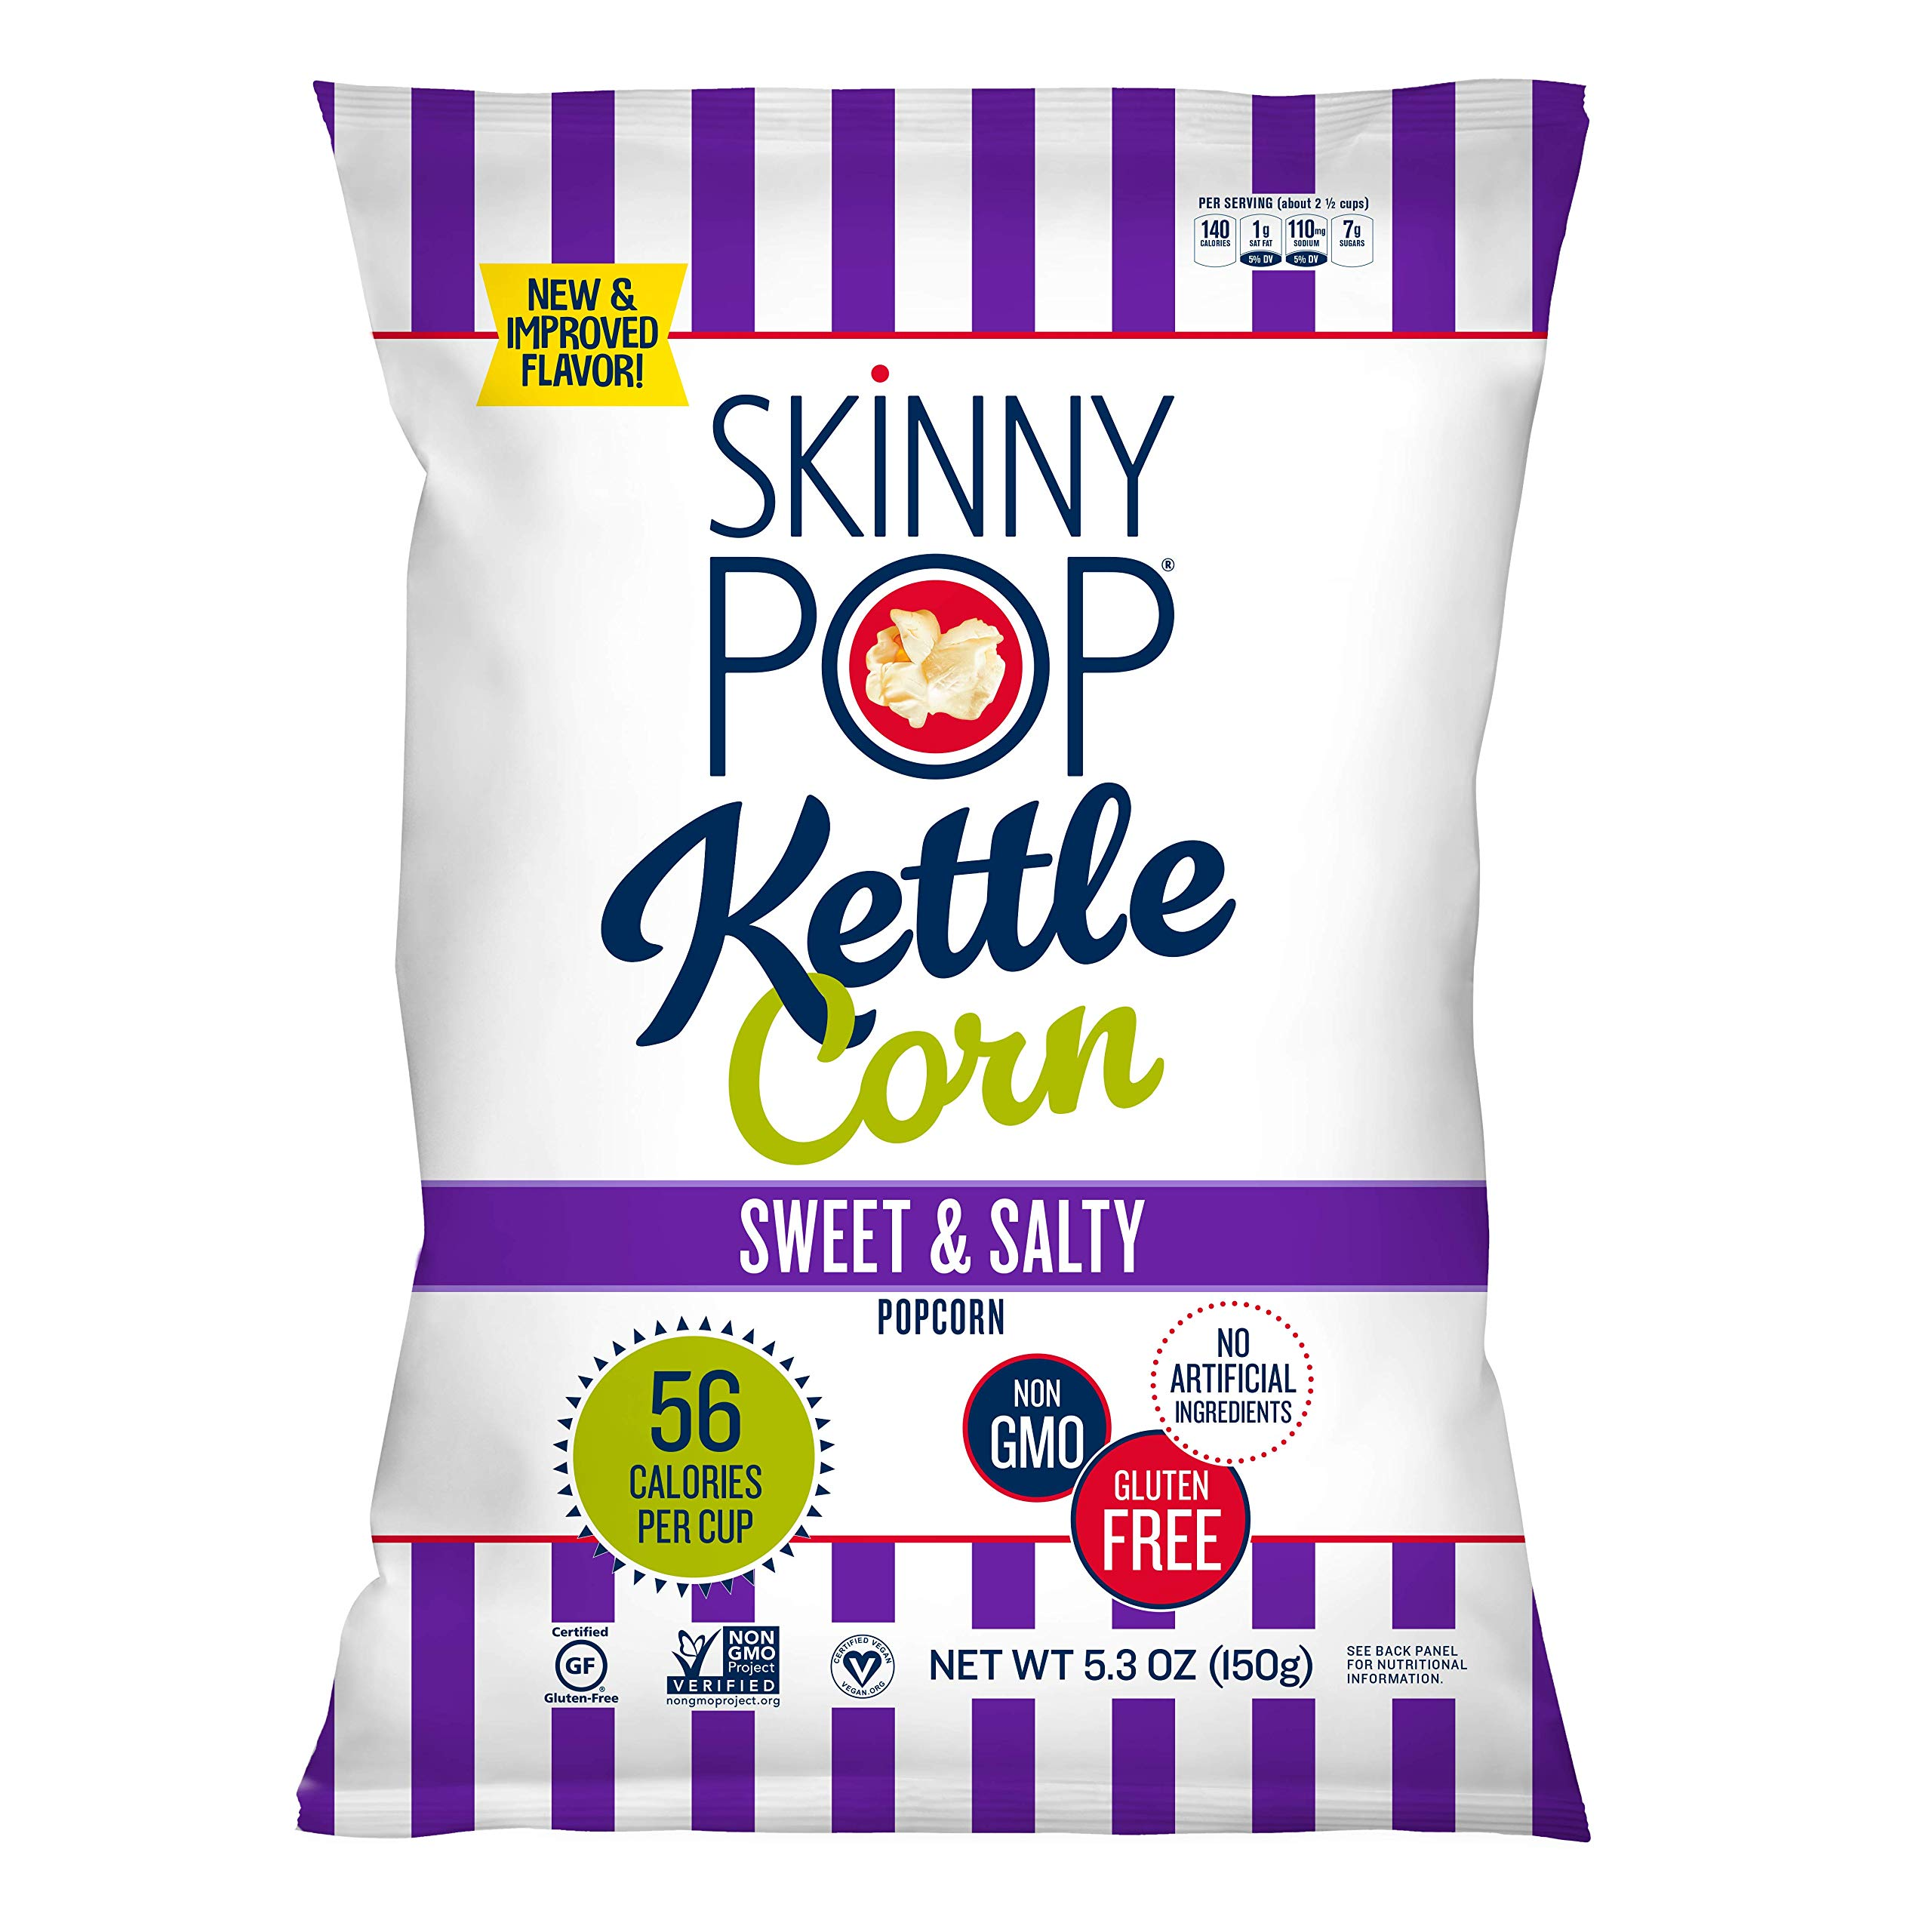 SkinnyPop Popped Sweet & Salty Kettle Popcorn, Vegan, Gluten-free, Non-GMO, Healthy Snacks, 5.3oz Grocery Sized Bags (Pack of 12)